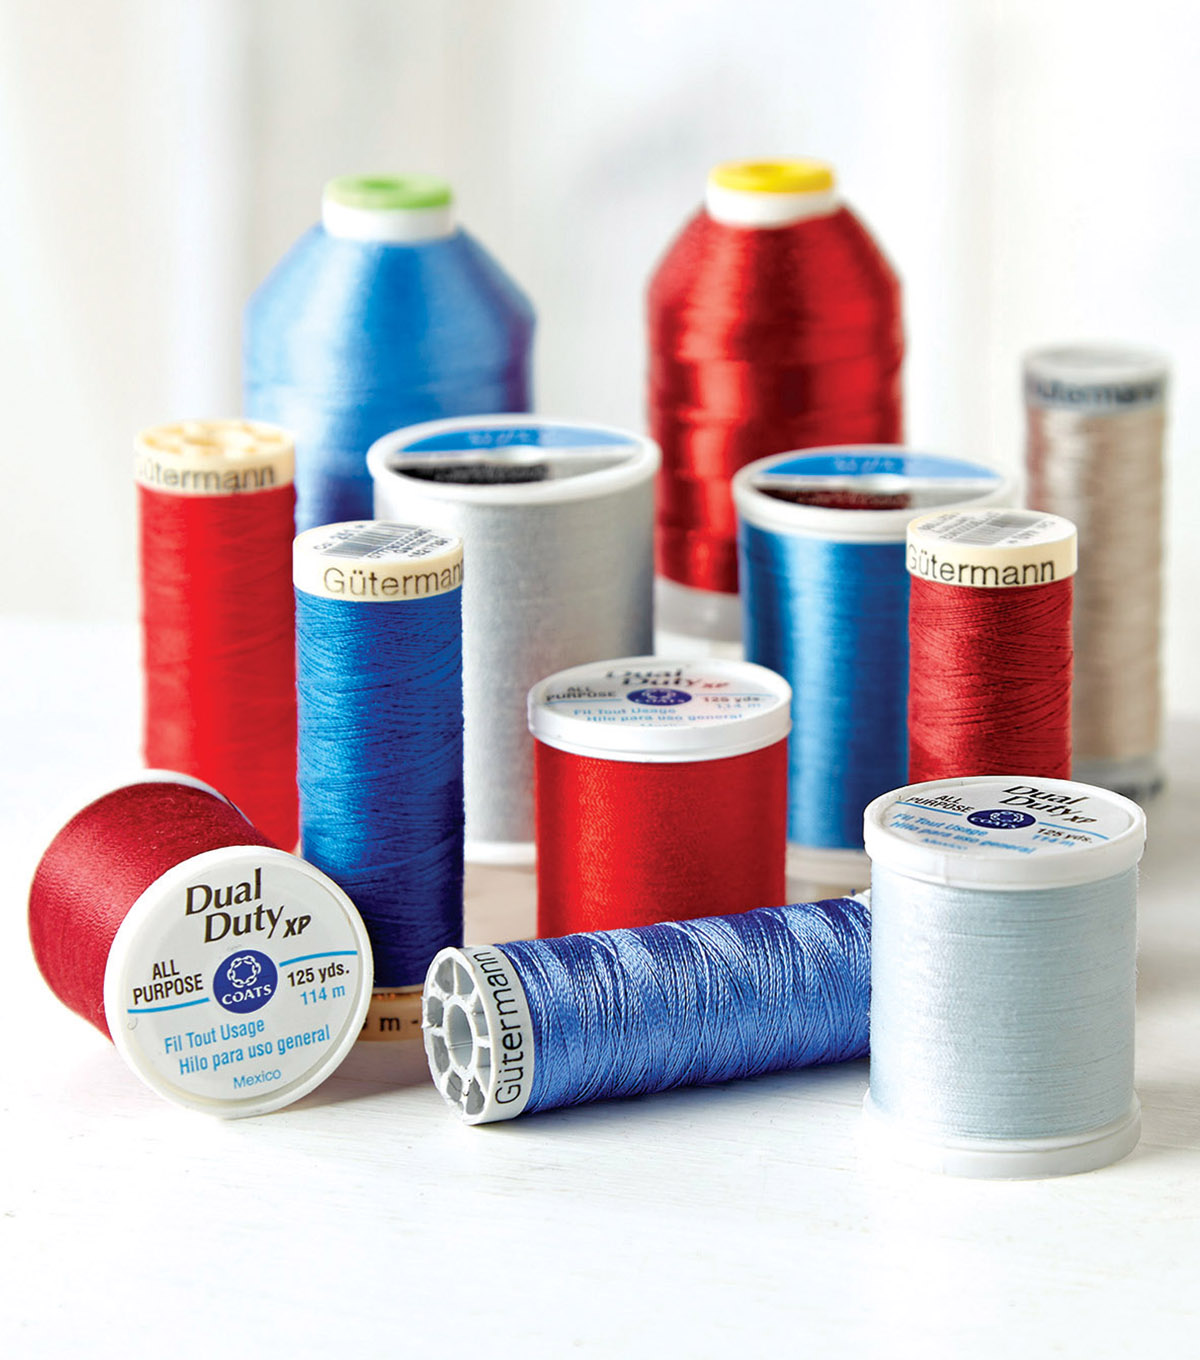 Thread - There are so many variations to thread, however, a sewing beginner really needs a small collection of general purpose threads. Gutermann or Coats & Clark threads will work perfectly for most of your sewing projects.